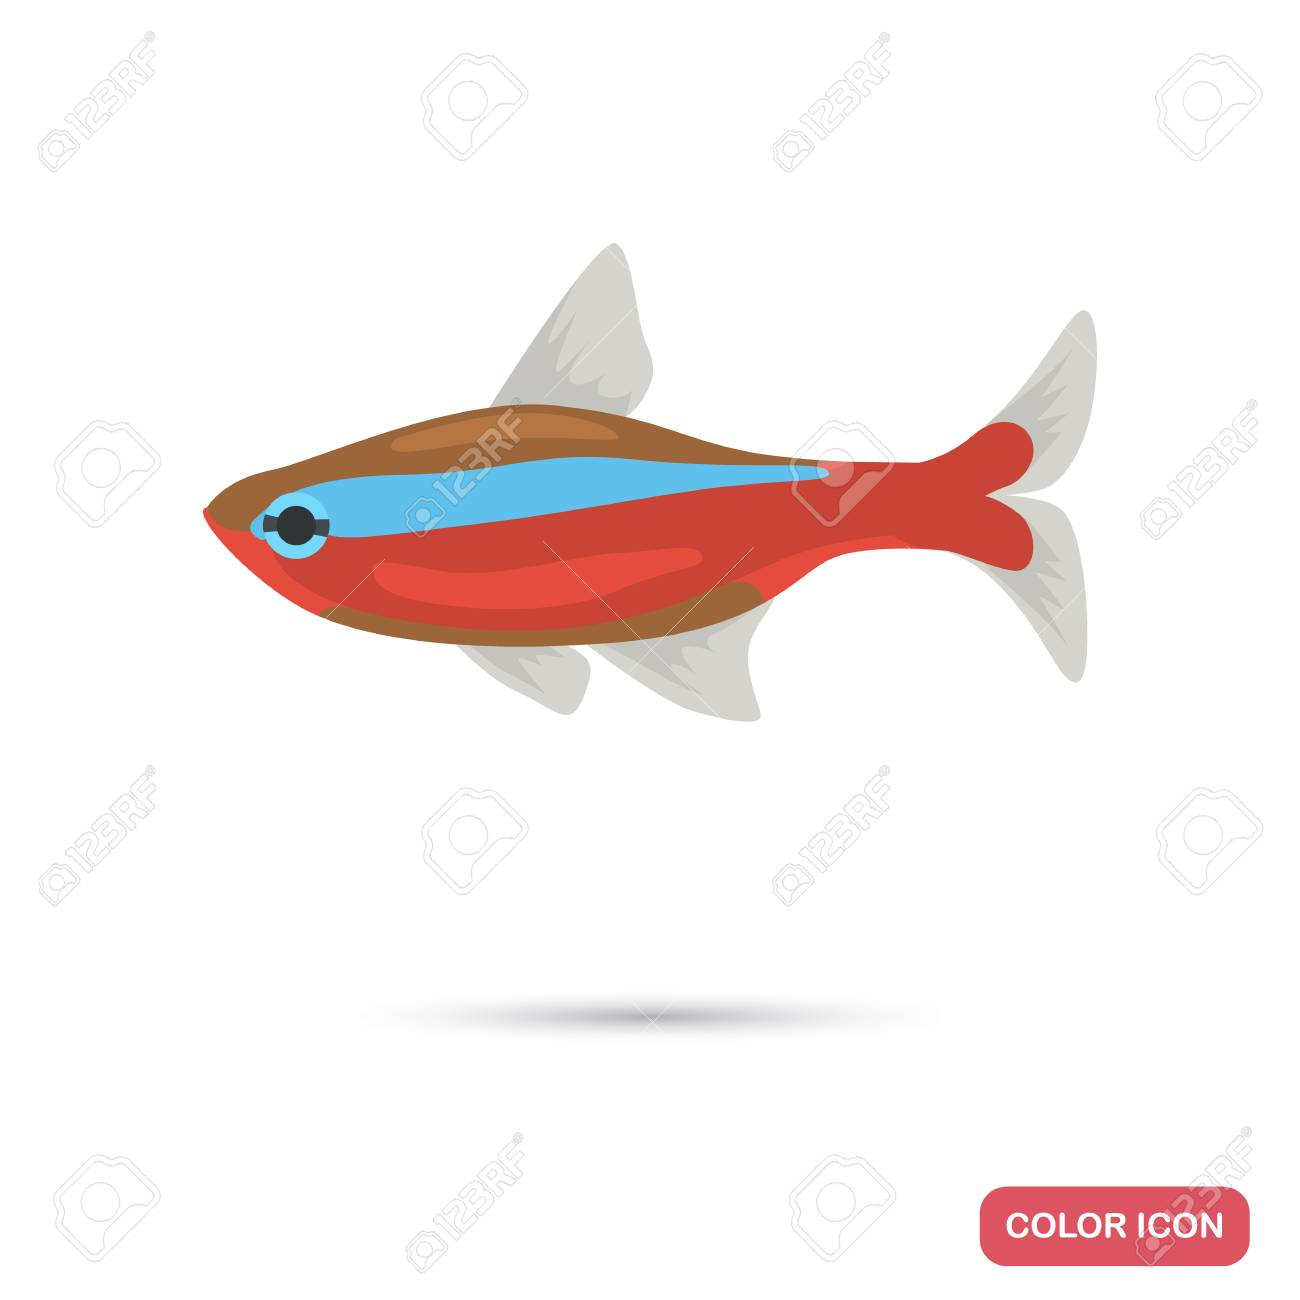 Neon Aquarium Fish Color Flat Icon Royalty Free Cliparts, Vectors ...